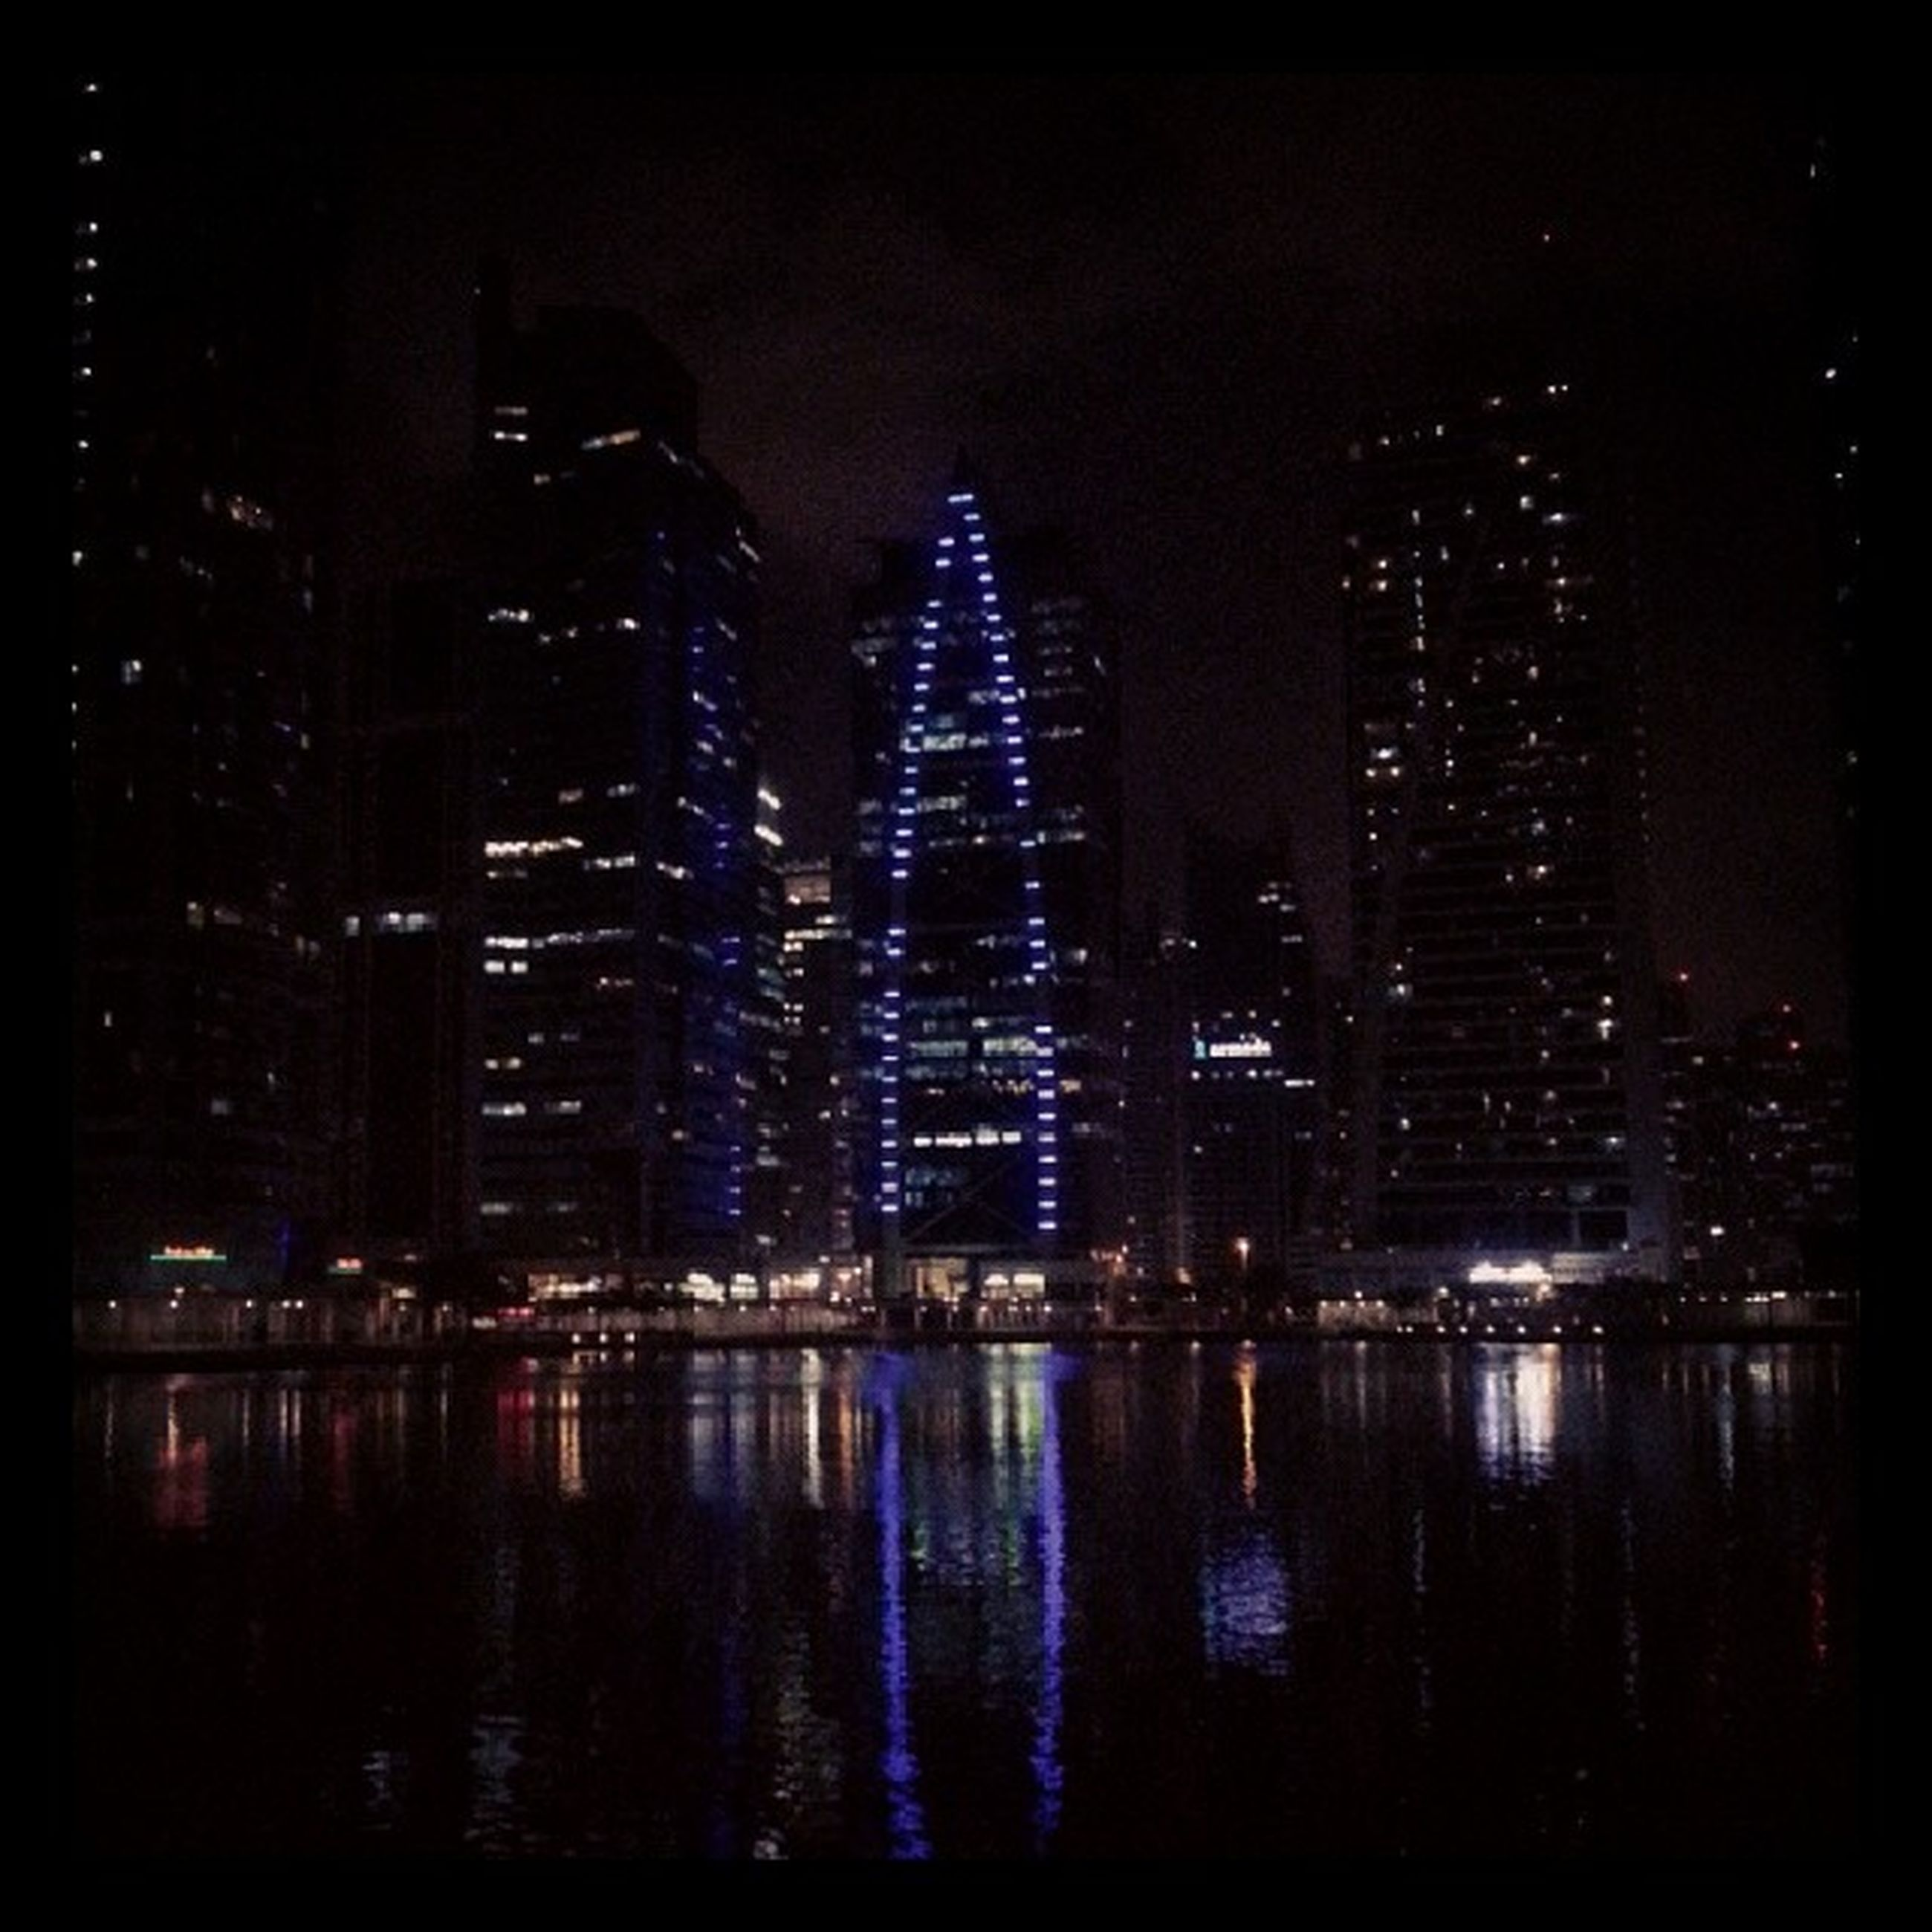 night, illuminated, building exterior, city, water, architecture, reflection, built structure, skyscraper, waterfront, cityscape, modern, river, office building, urban skyline, tall - high, tower, sky, building, financial district